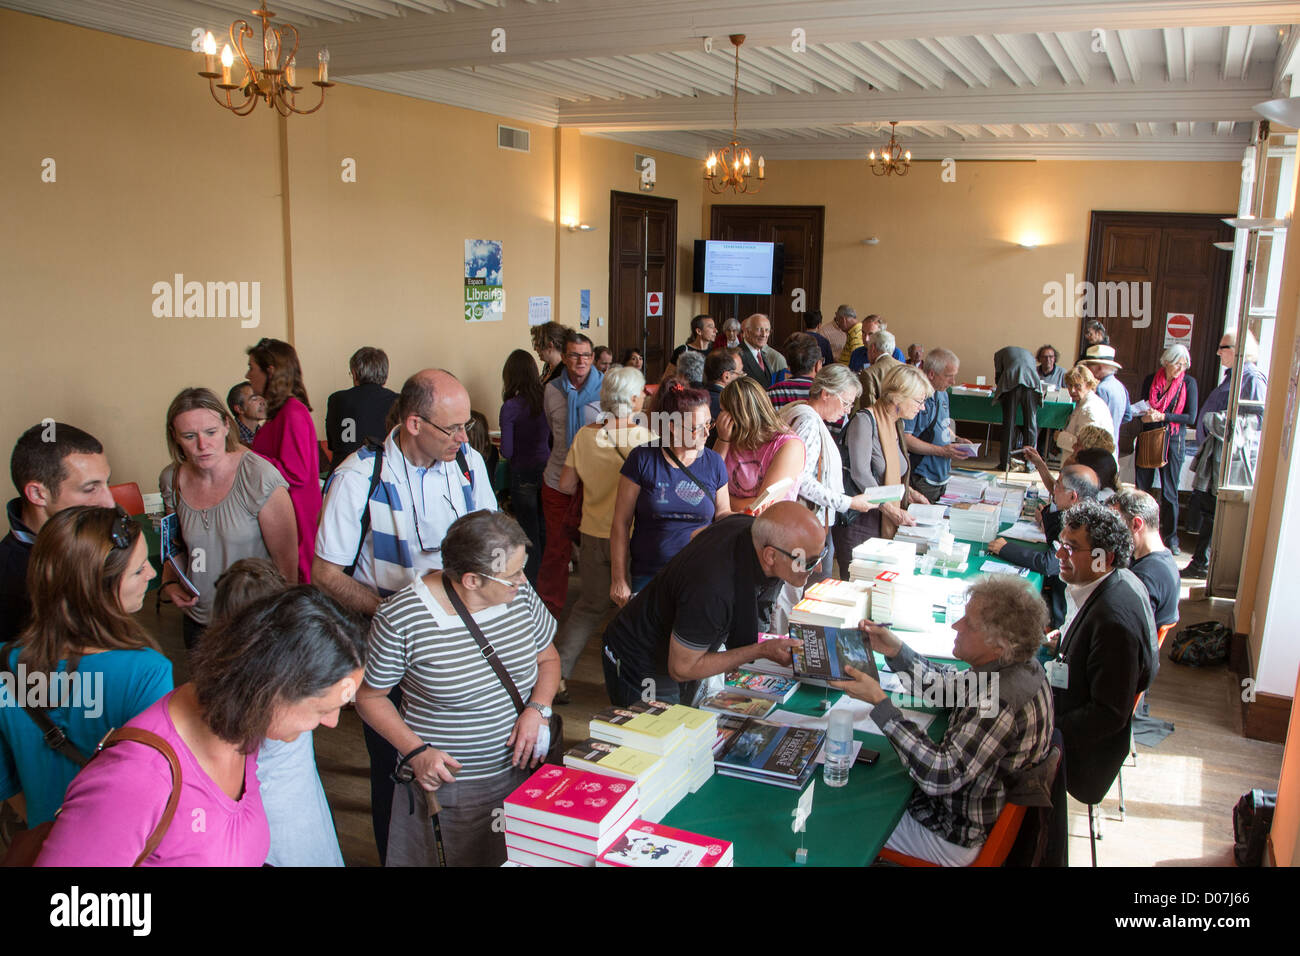 THE BOOKSTORE ENCOUNTER WITH THE AUTHORS BOOK FESTIVAL DOMAINE DE SAINT-SIMON LA FERTE-VIDAME EURE-ET-LOIR (28) - Stock Image